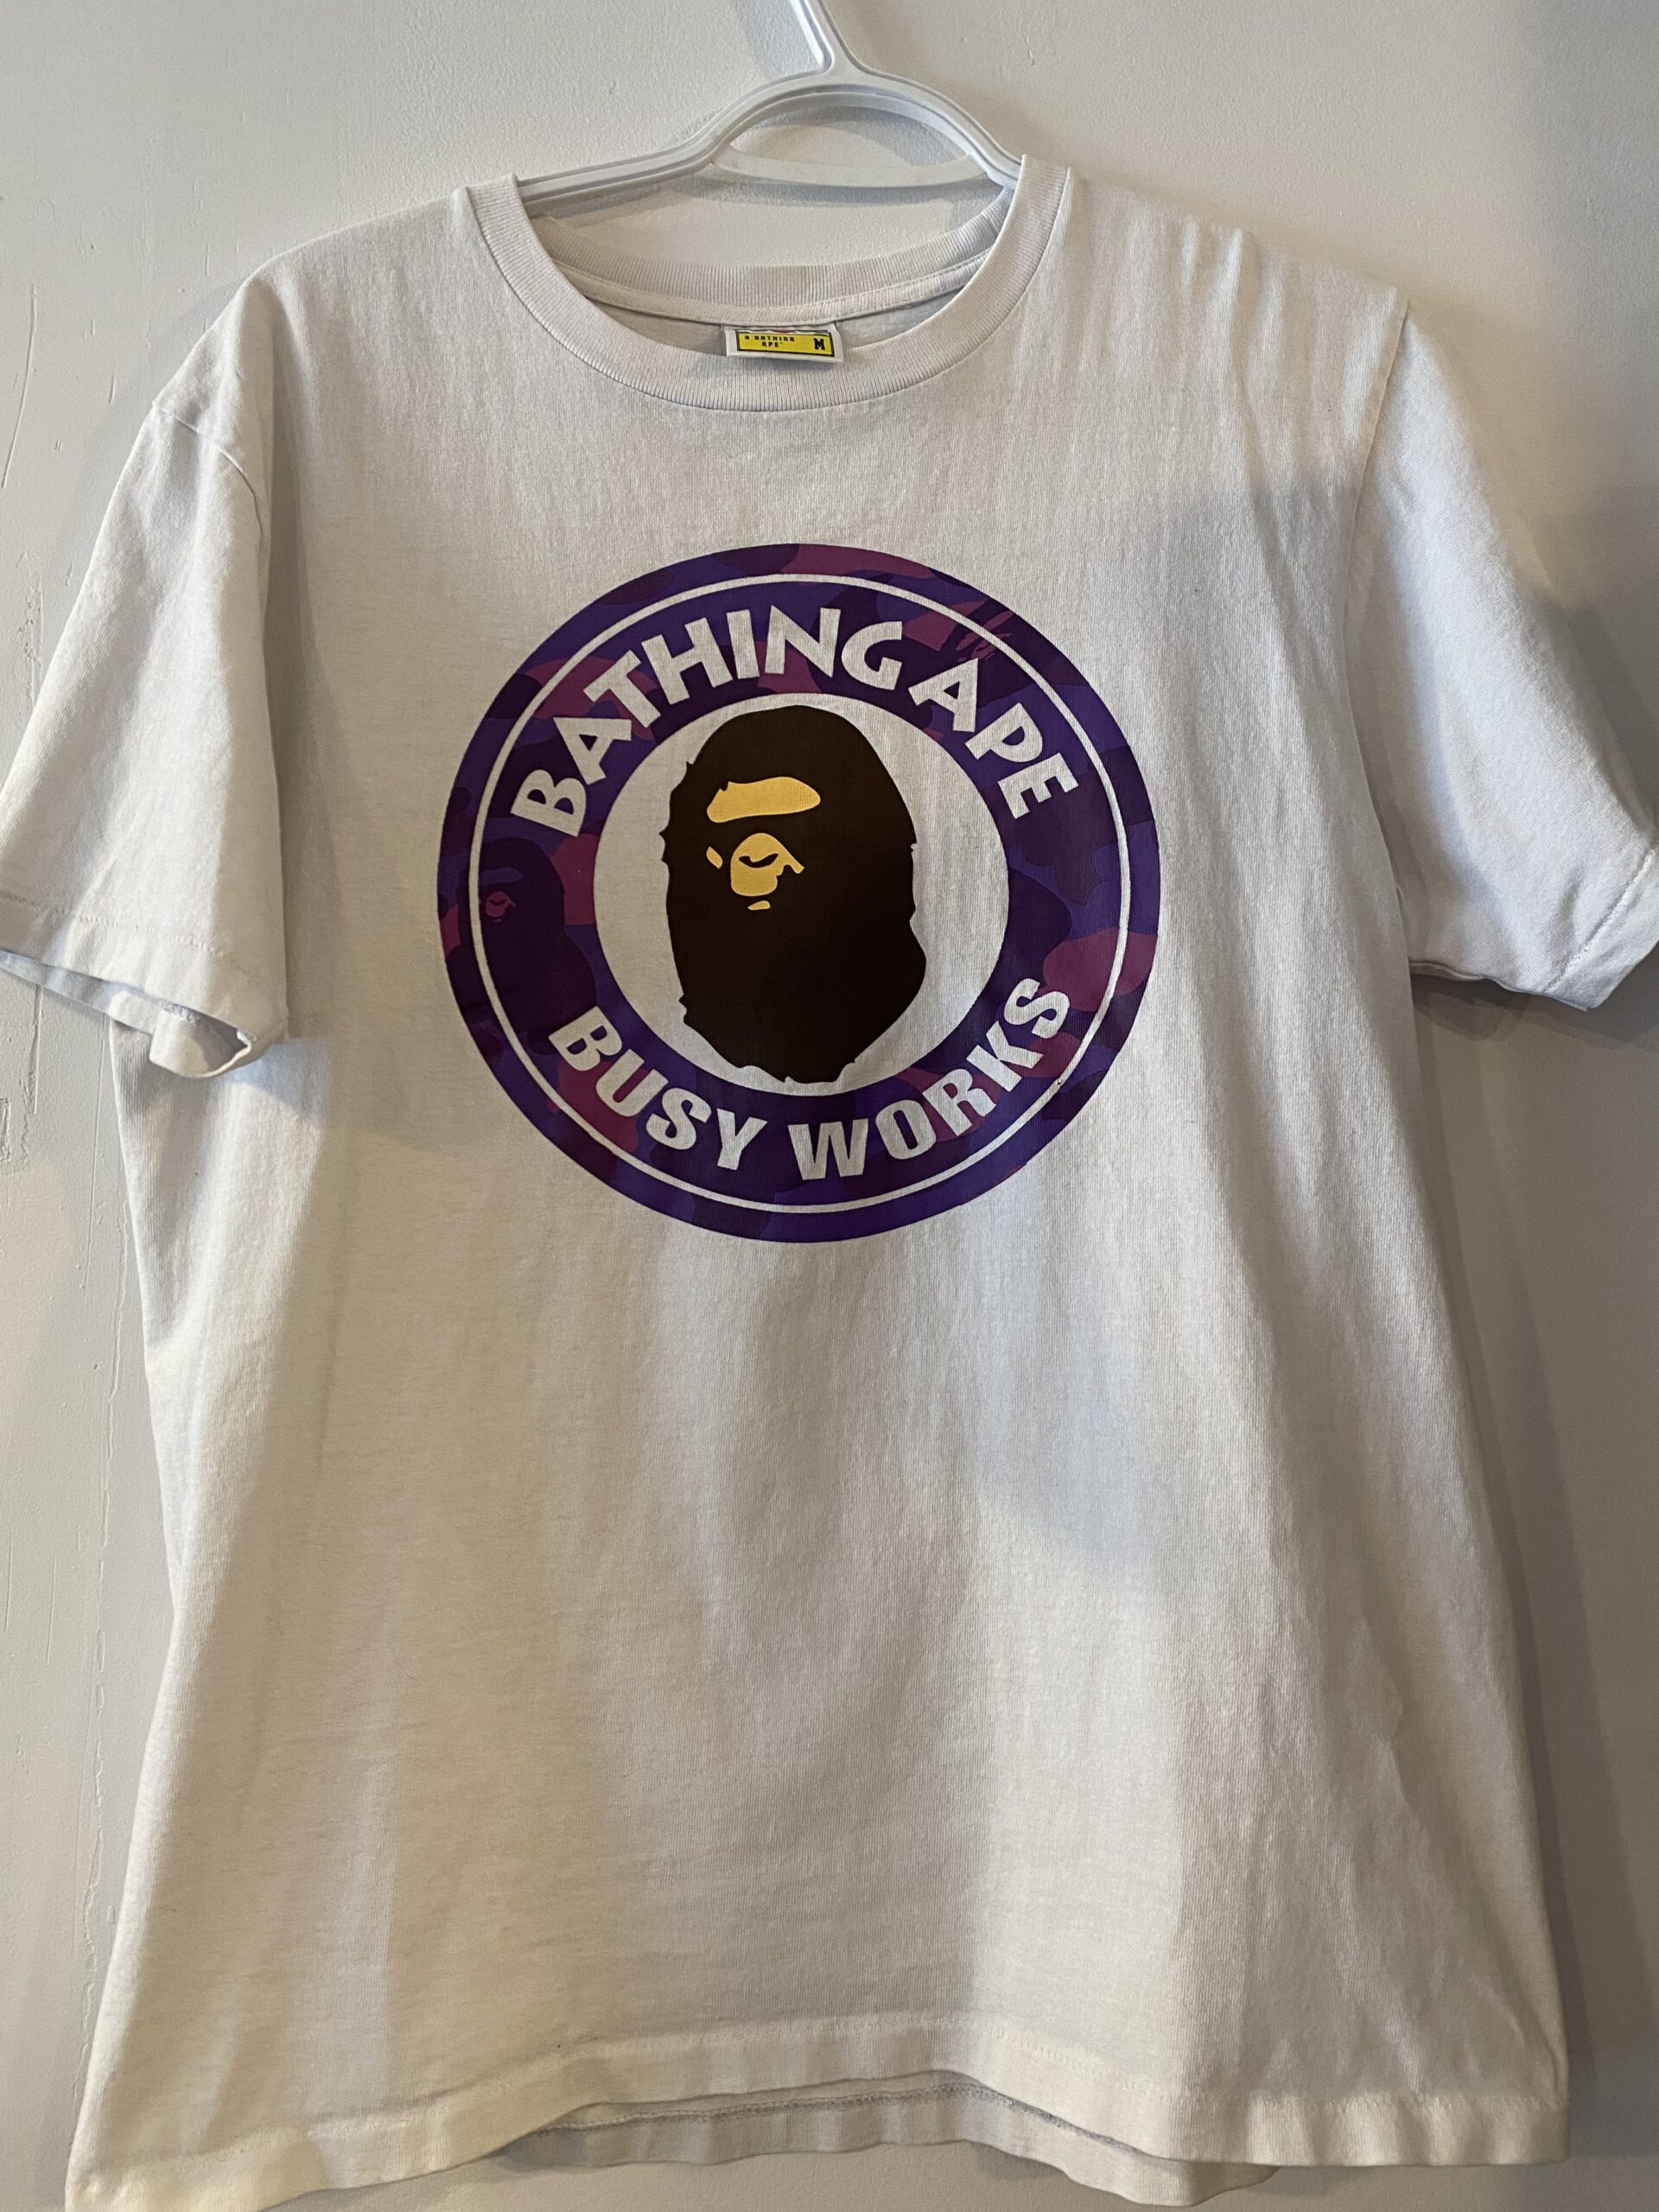 Preowned Bape Colour Camo Busy Works Tee White Purple Size M